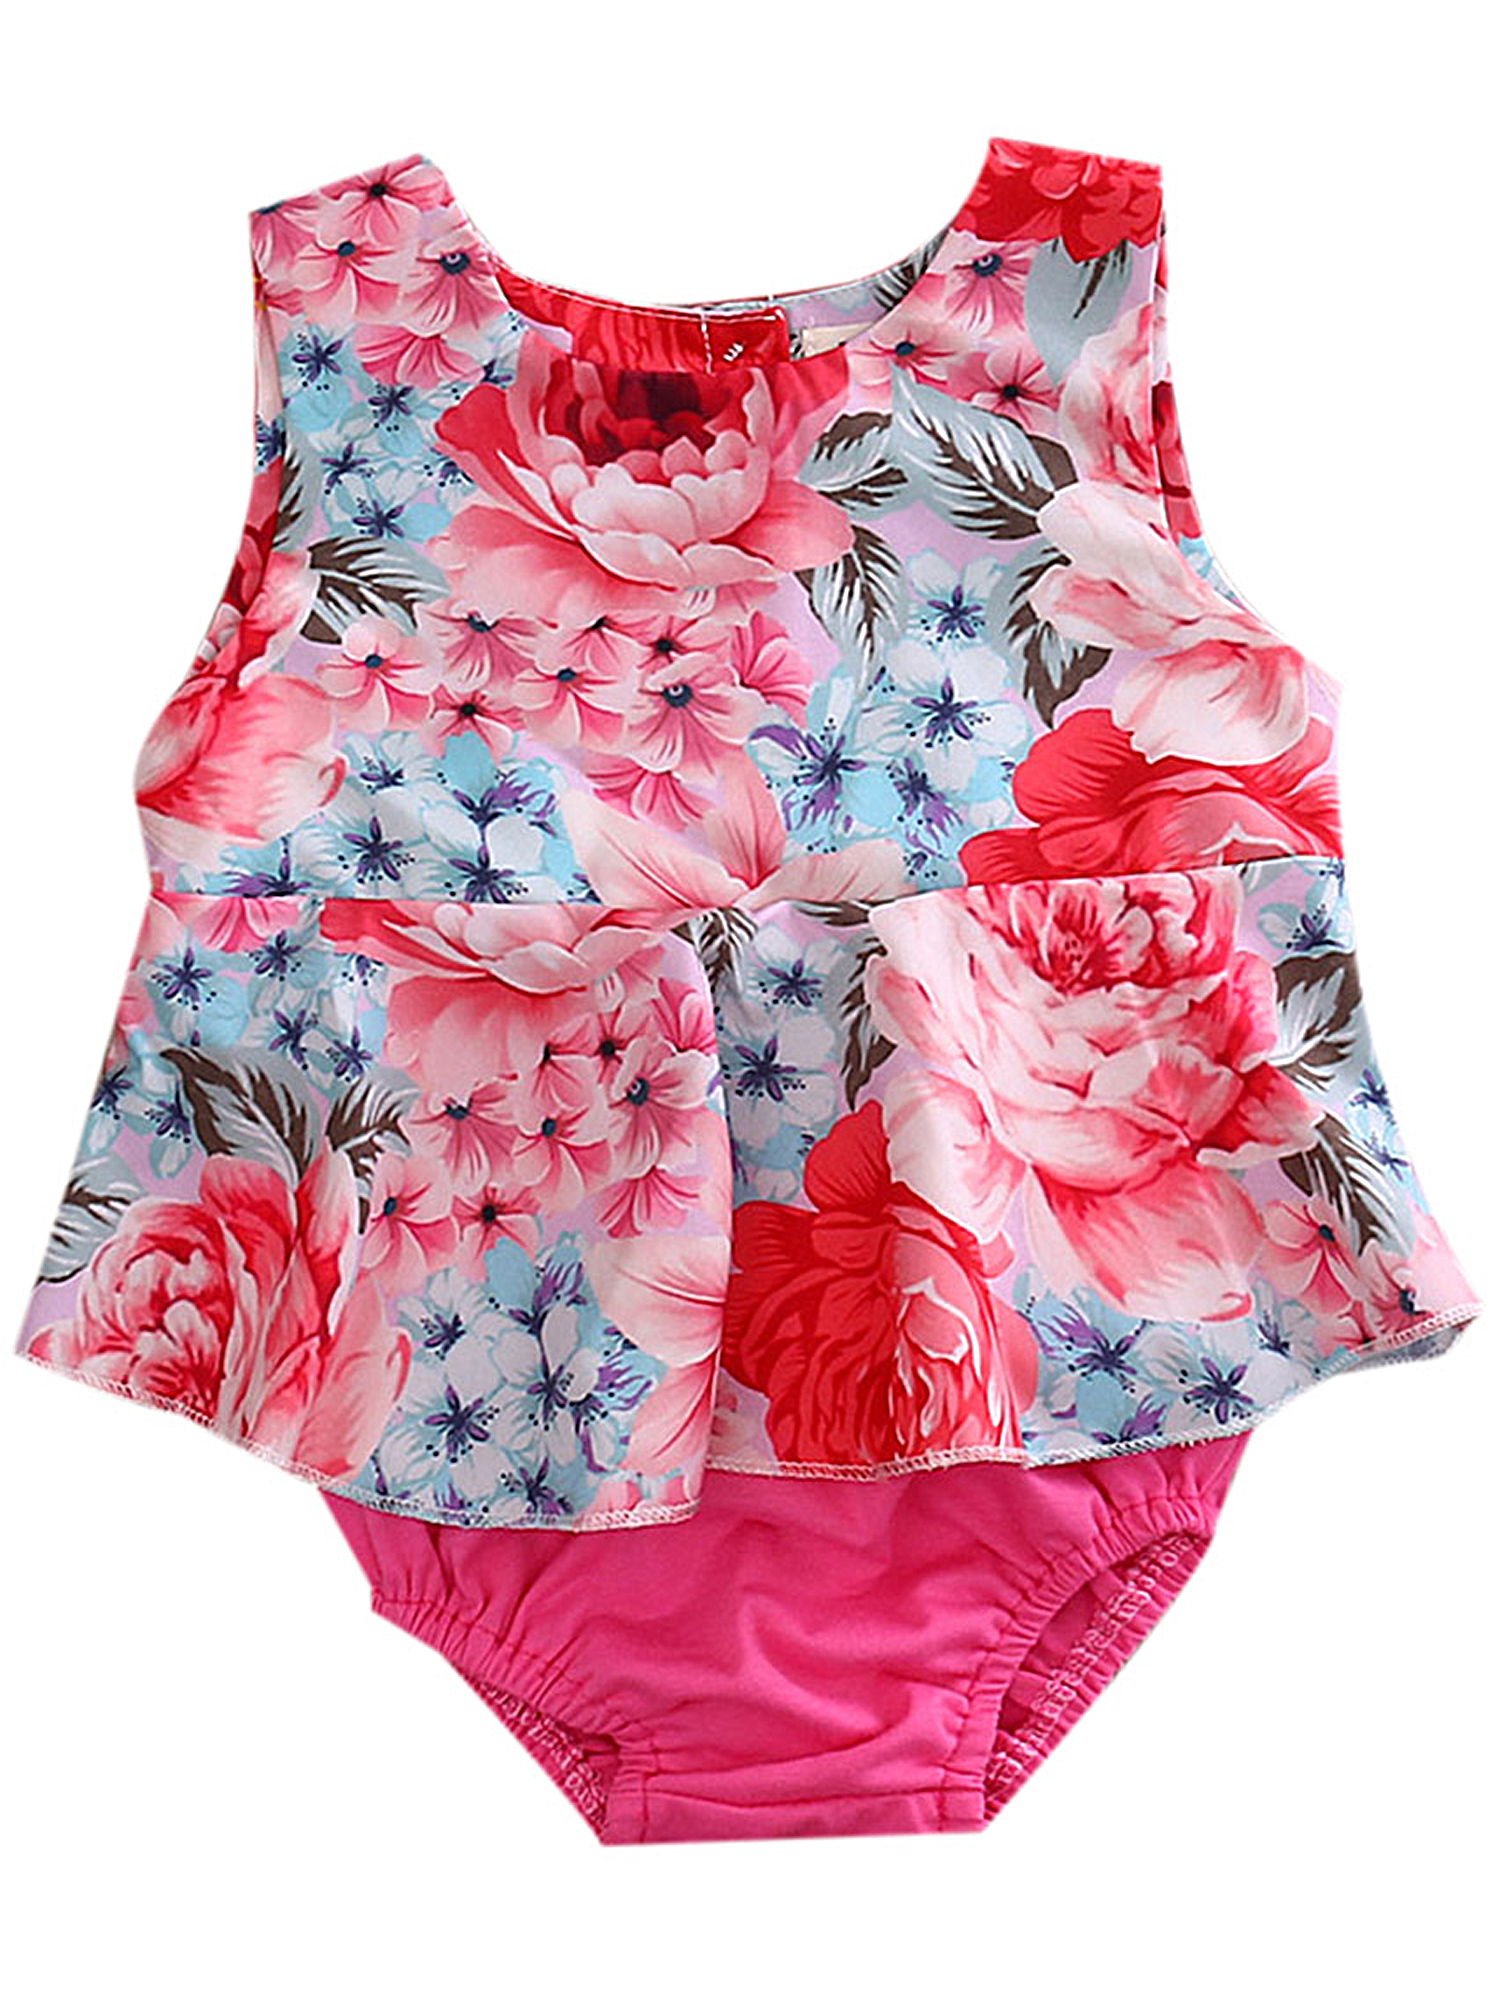 citgeett - Infant Baby Girl Clothes Cute Floral Print ...